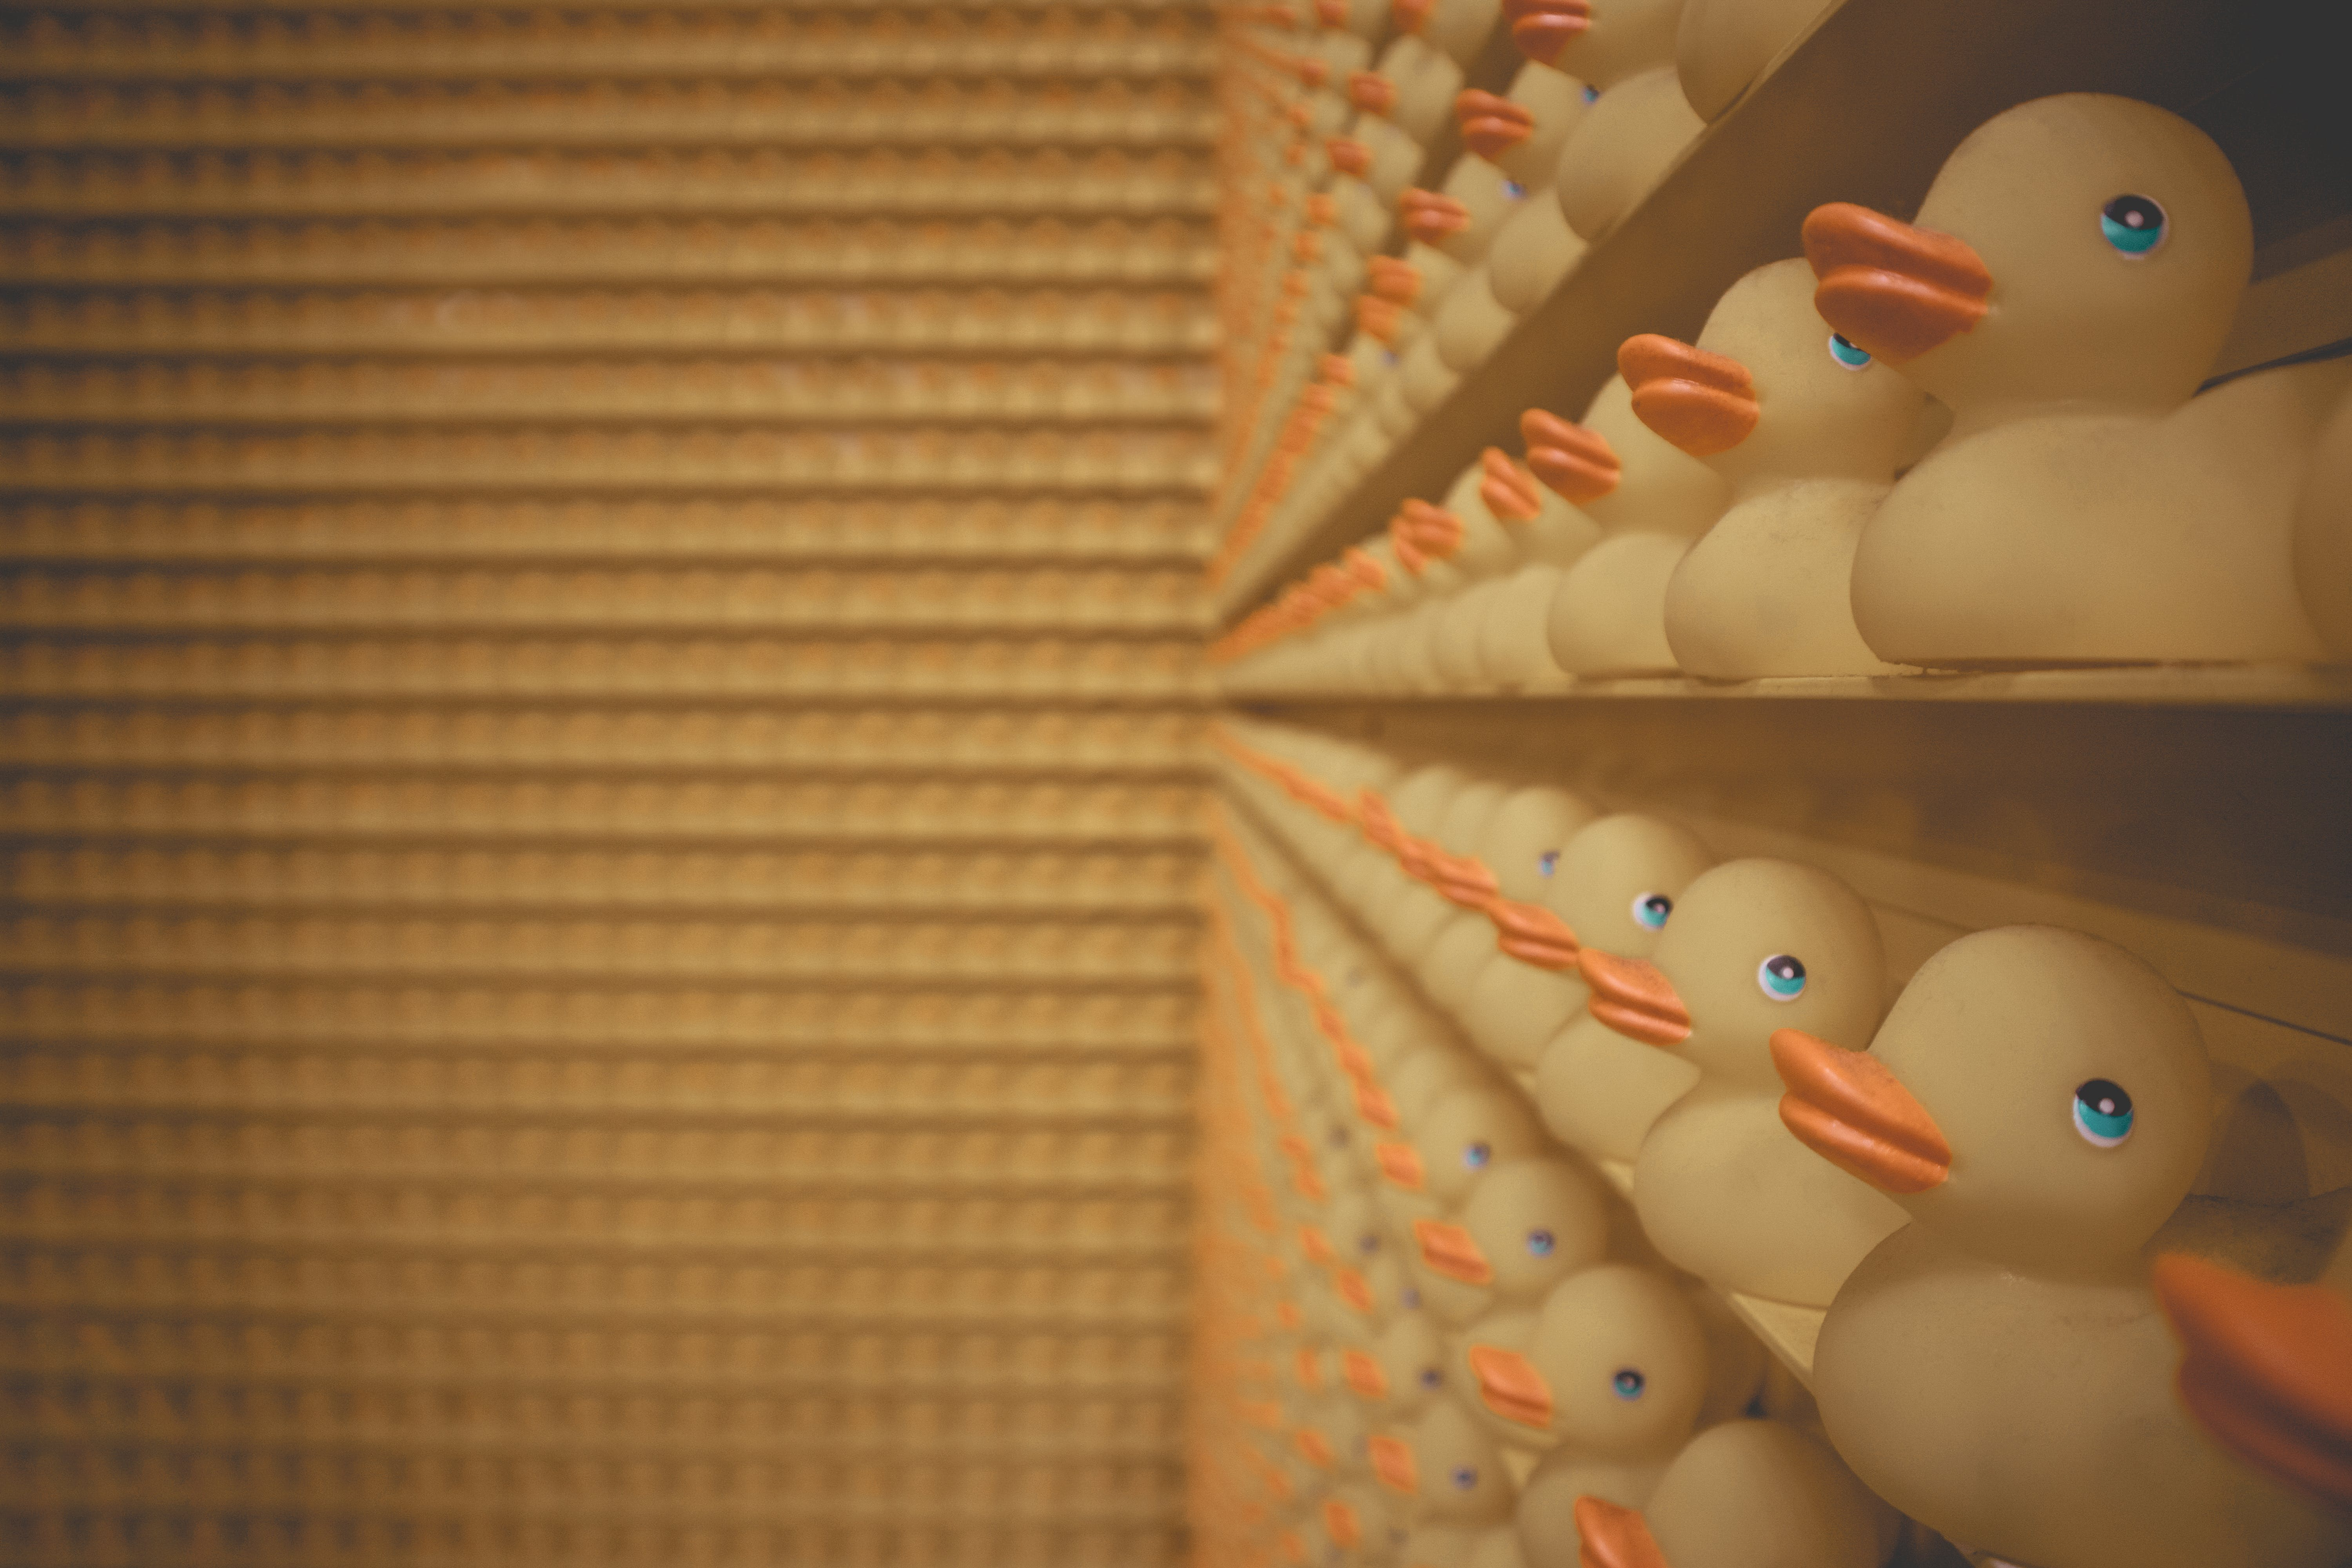 Lined Up of Rubber Duck on Shelf